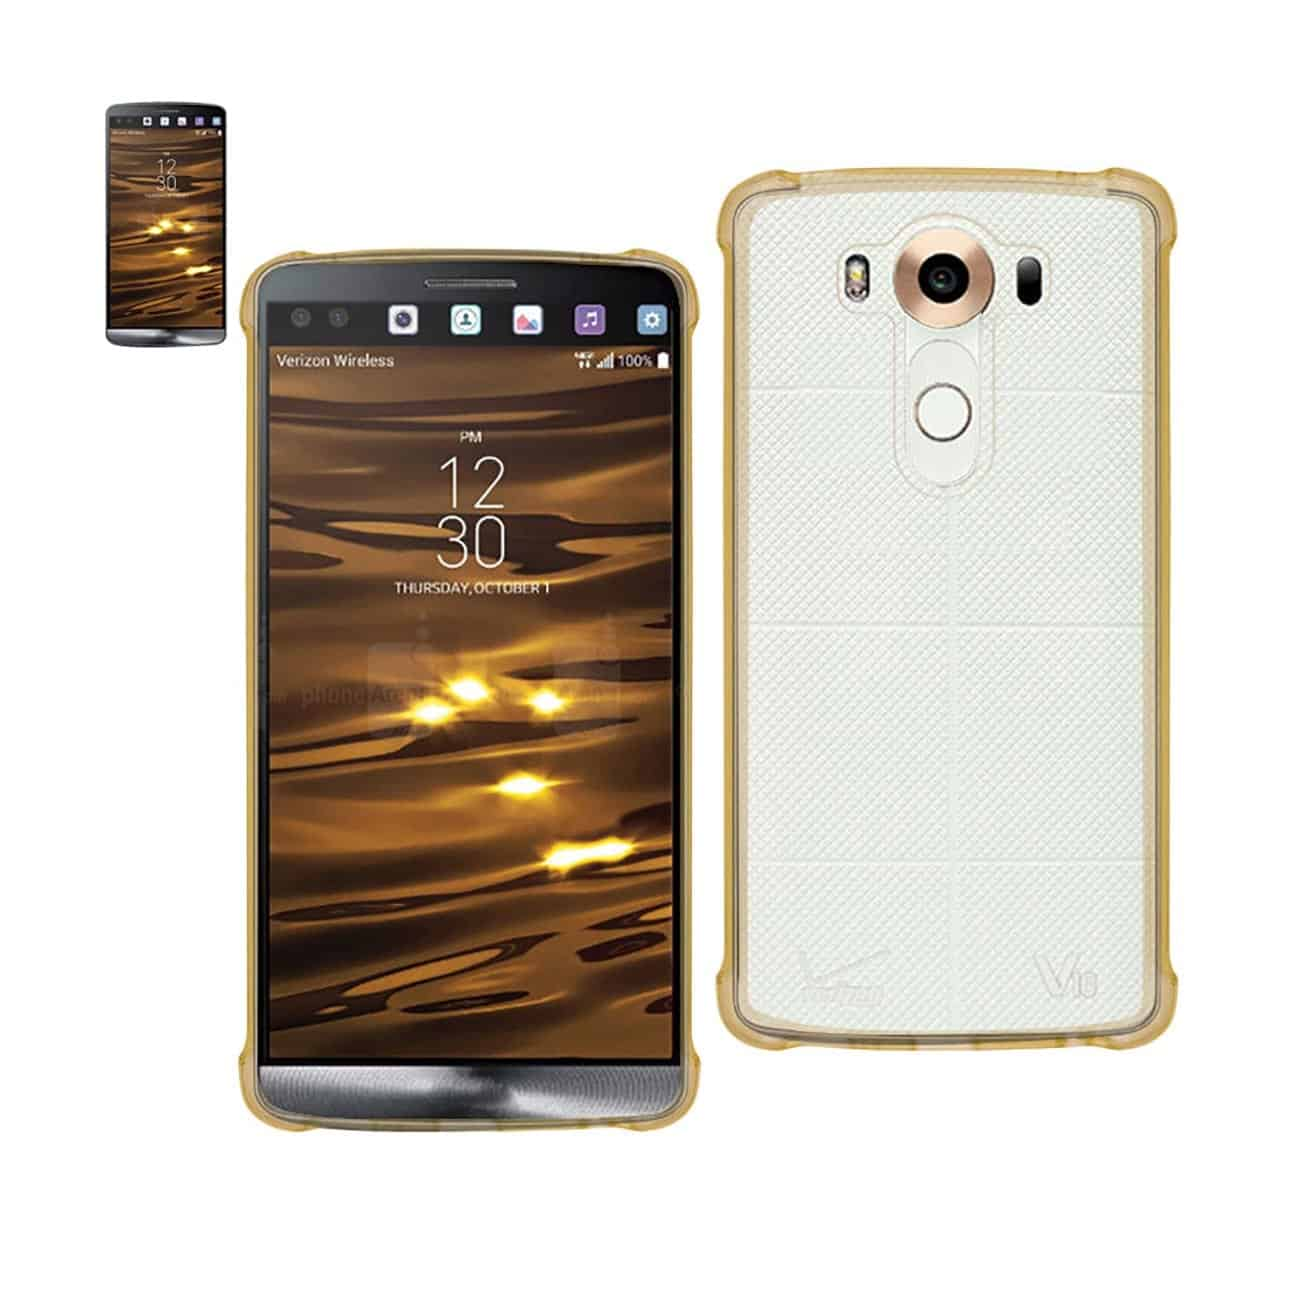 LG V10 MIRROR EFFECT CASE WITH AIR CUSHION PROTECTION IN CLEAR GOLD